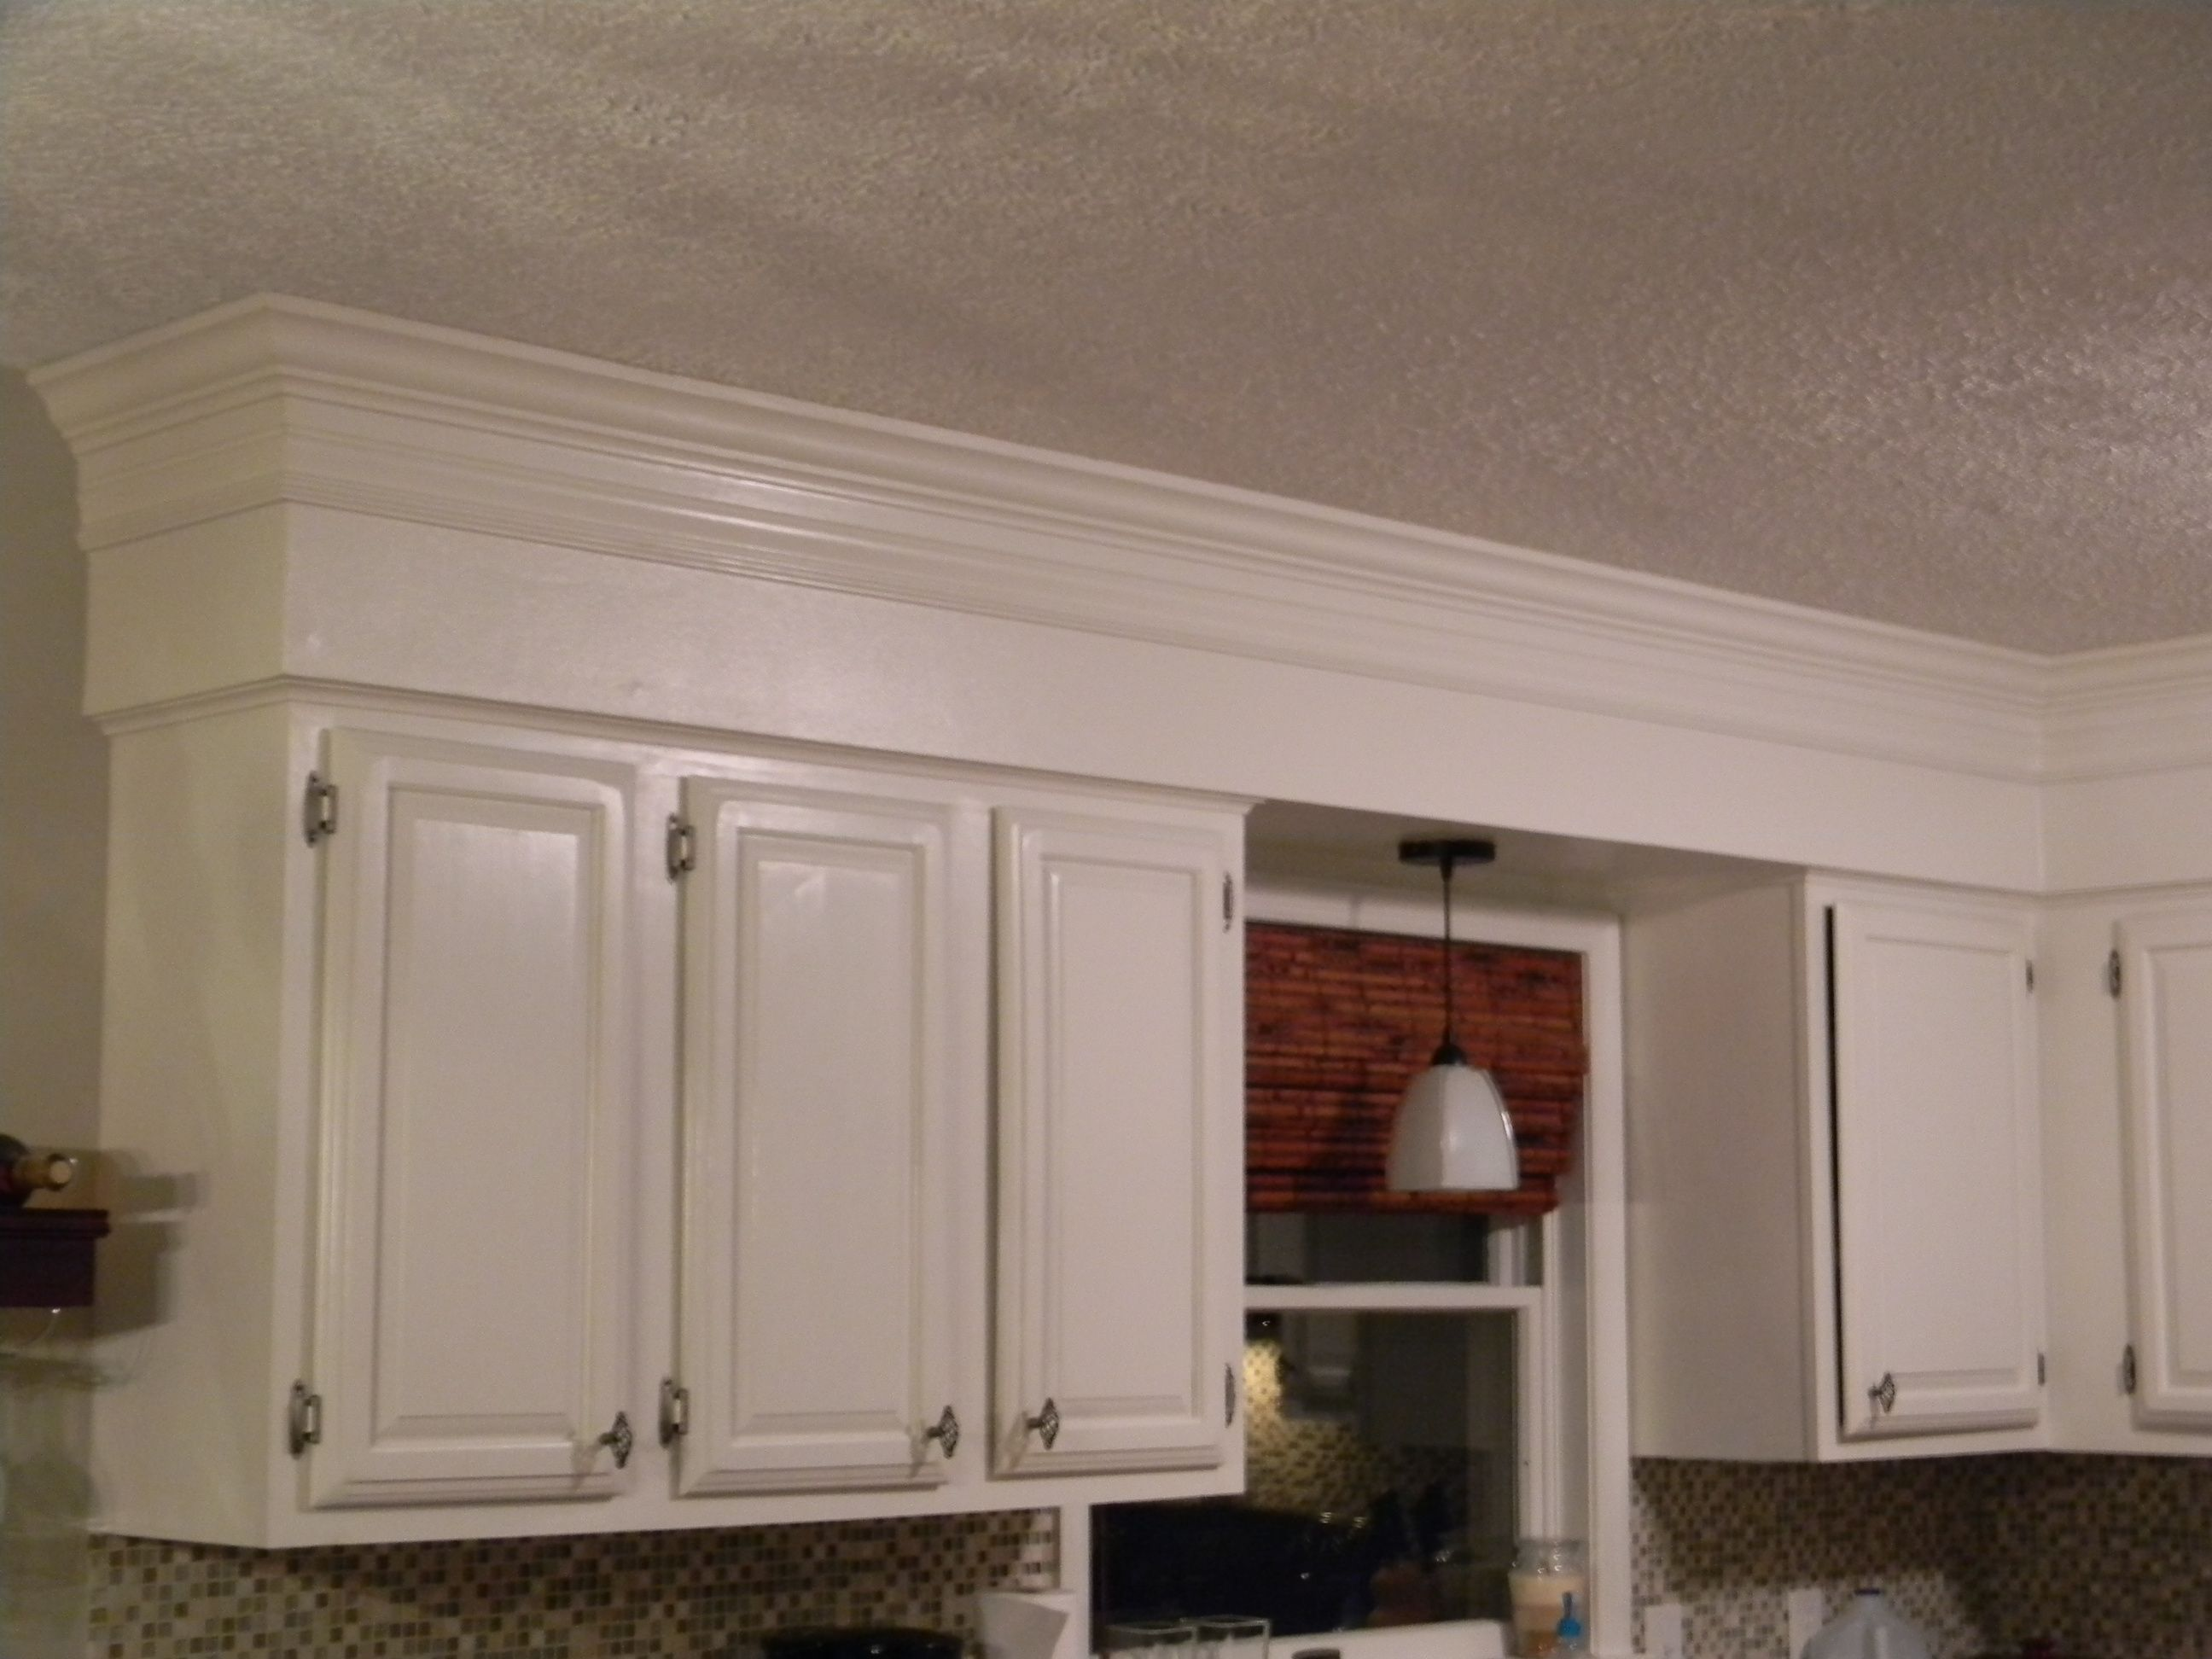 Merveilleux Make Your Old Cabinets Look Like Custom To The Ceiling Cabinetry By Adding  Some Crown Molding And Painting The Bulkhead And Old Cabinets To Match.